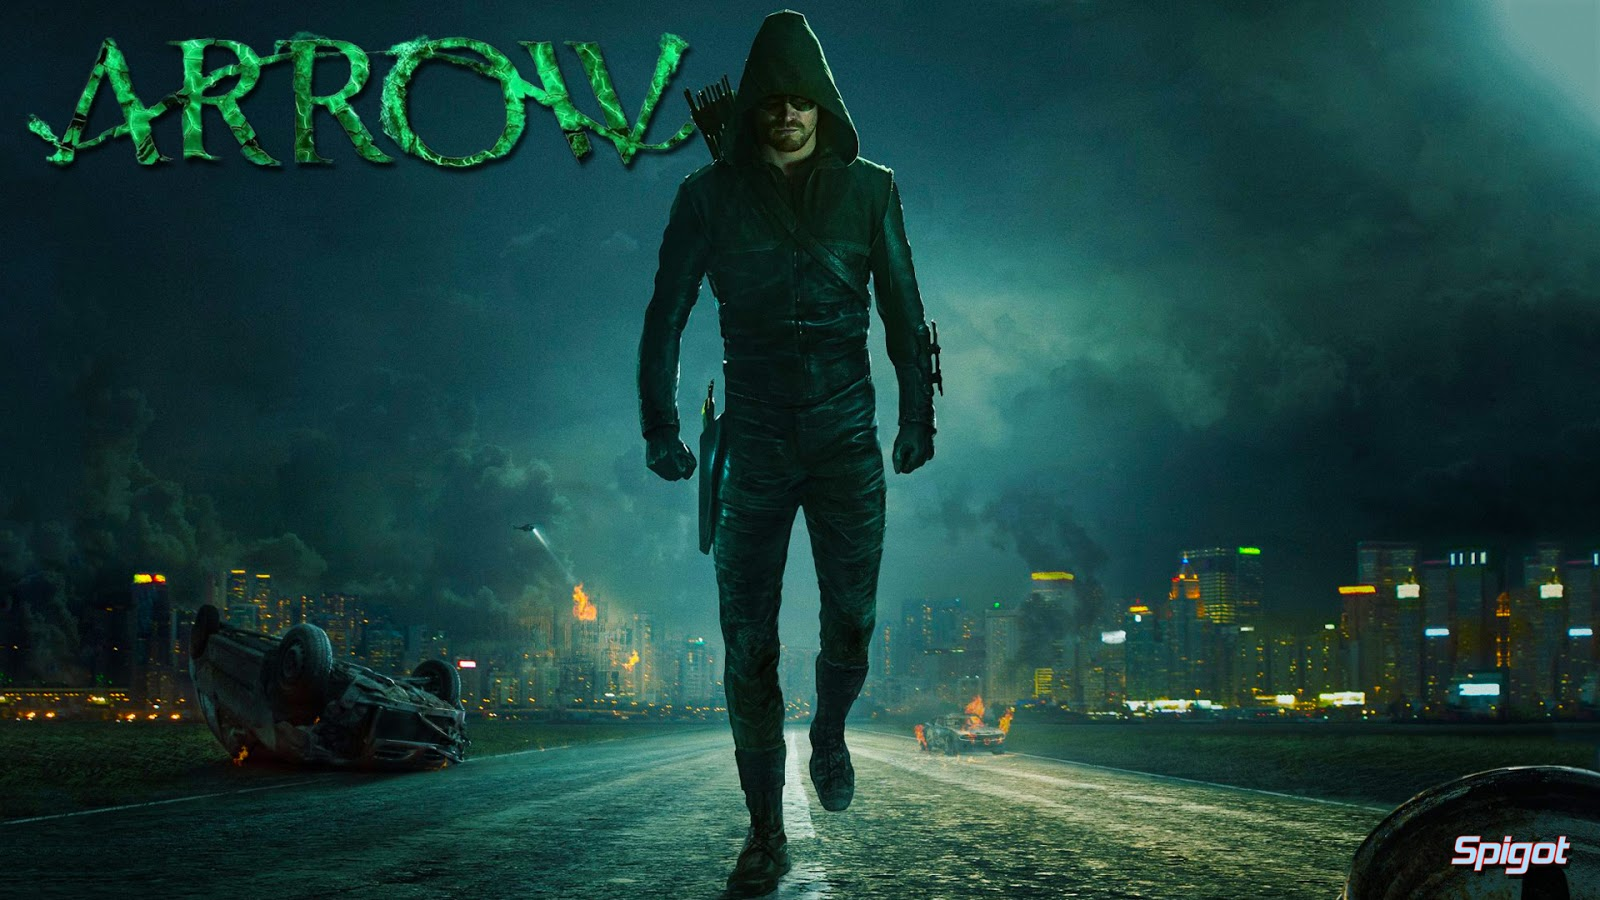 17 incredible and uncanny facts for the green arrow passionate